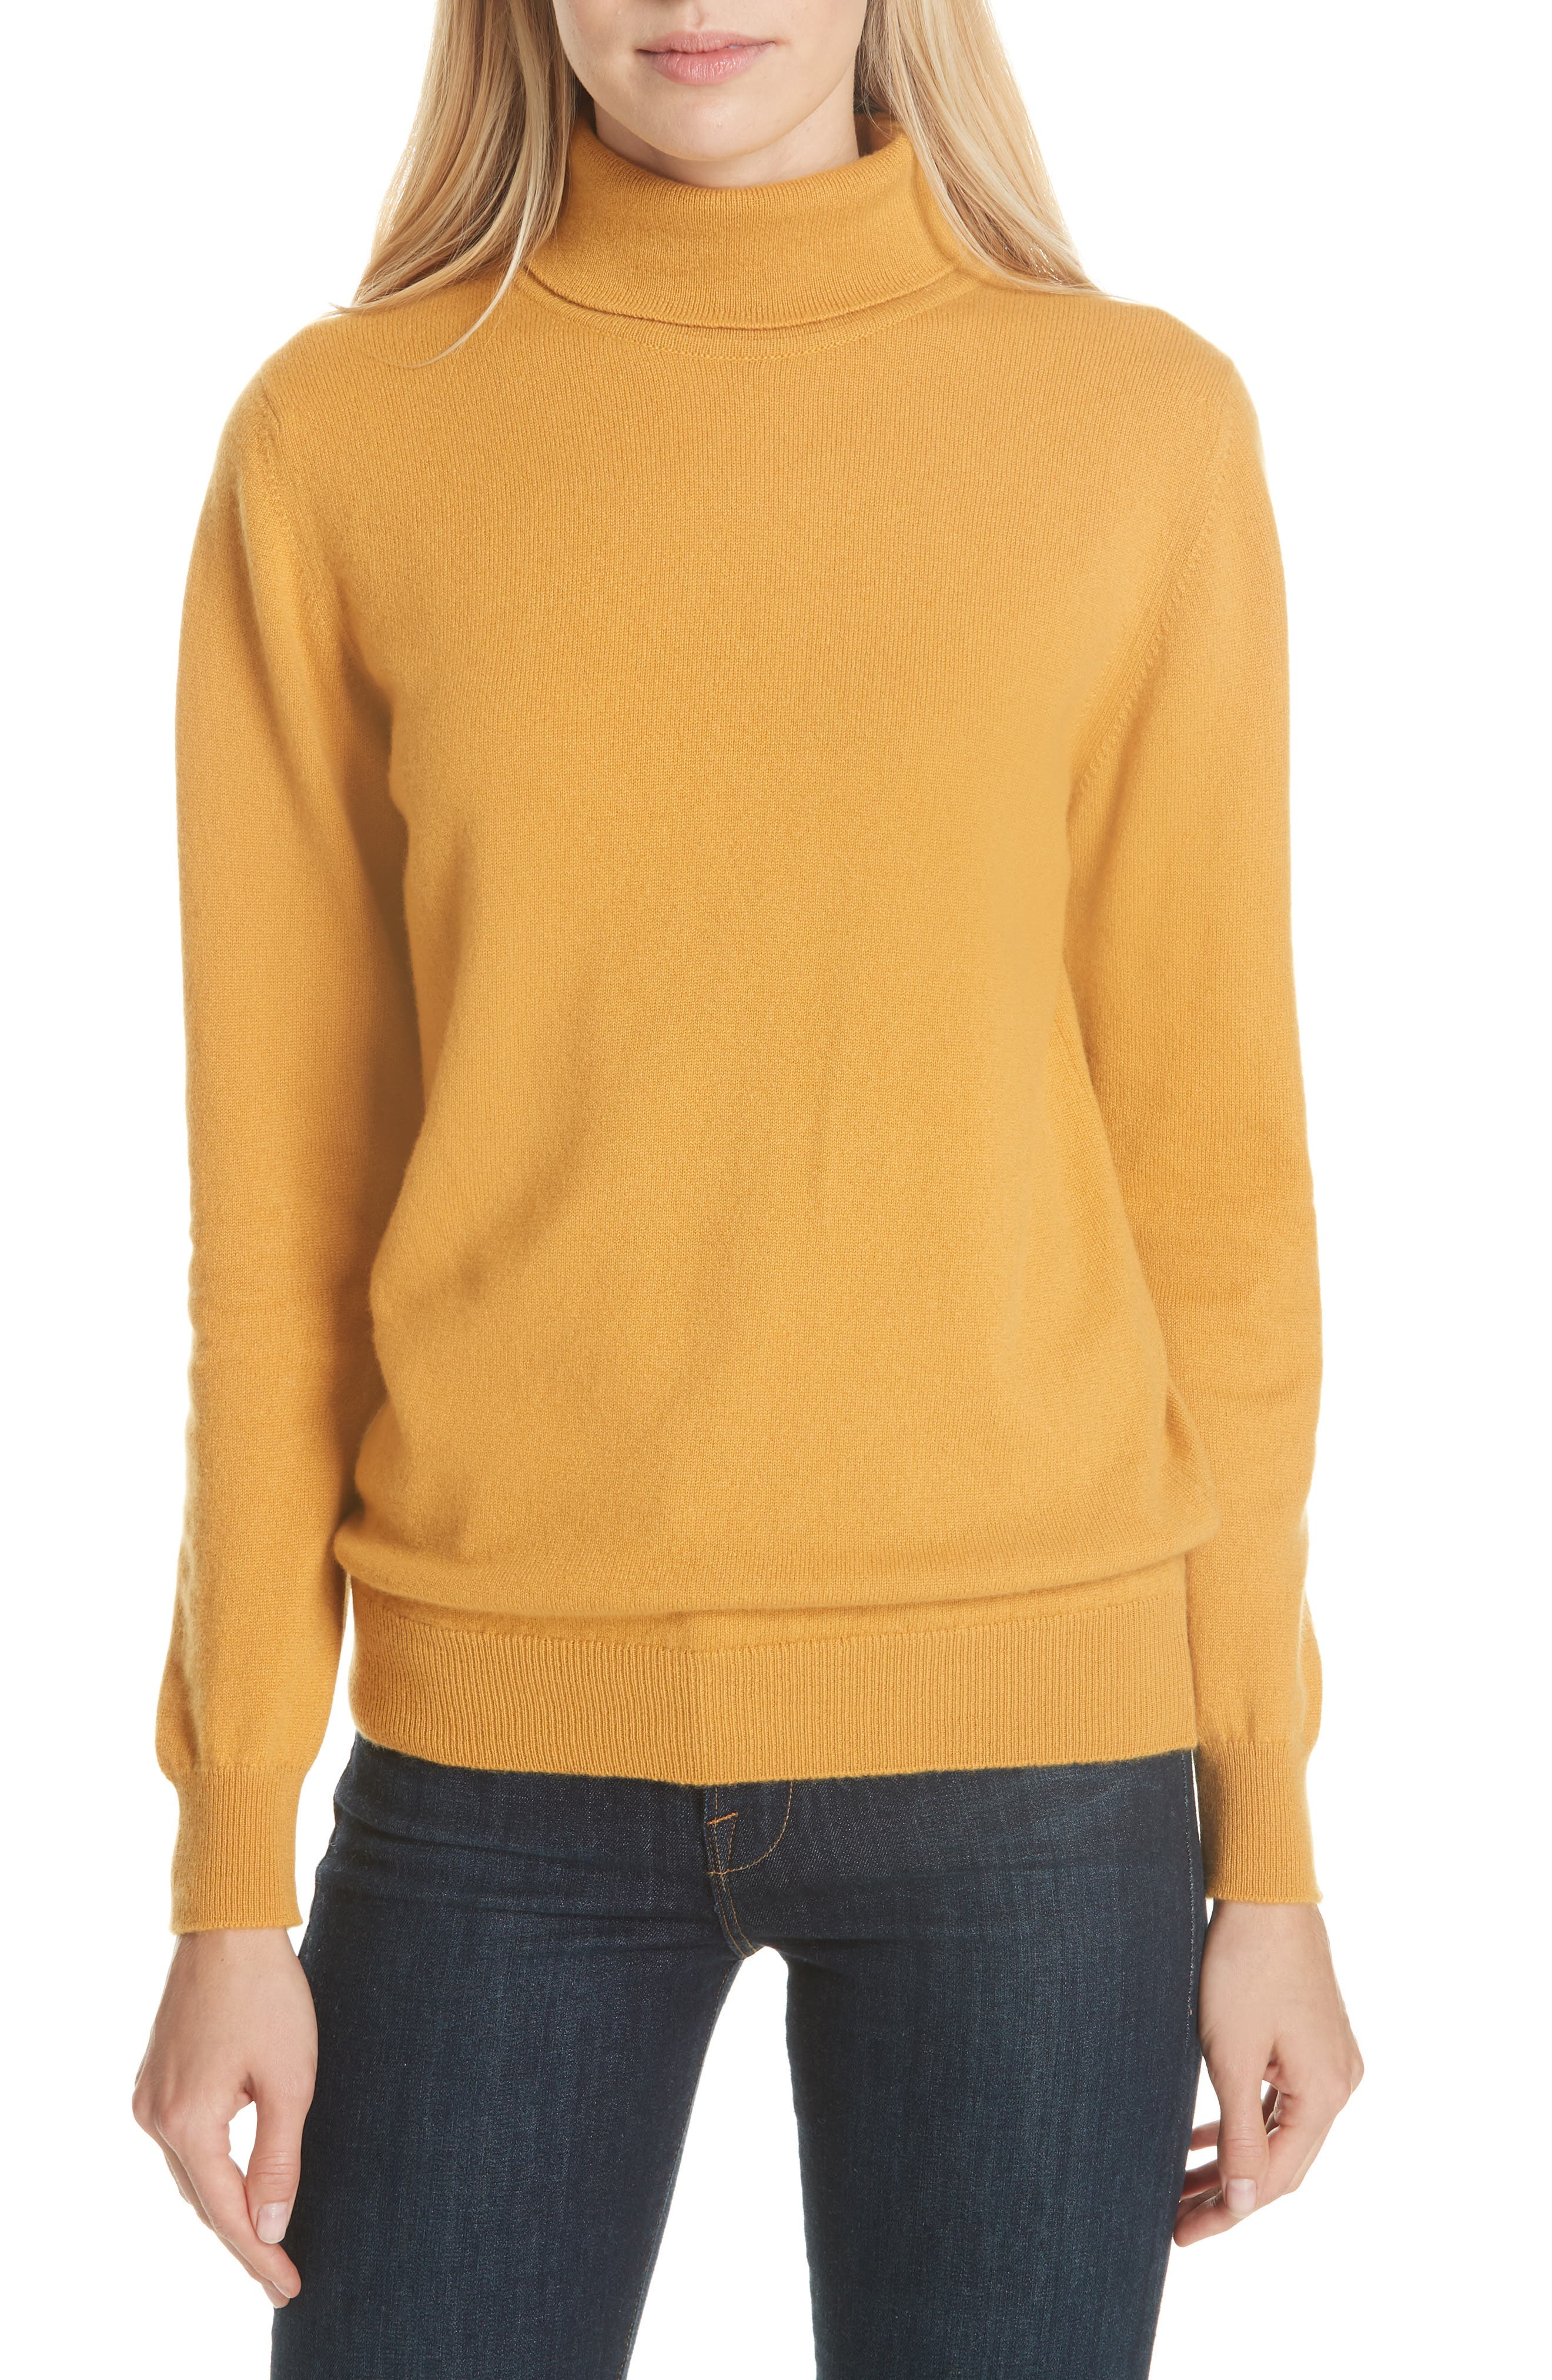 DAUGHTER Casla Cashmere Roll Neck Sweater in Tansy